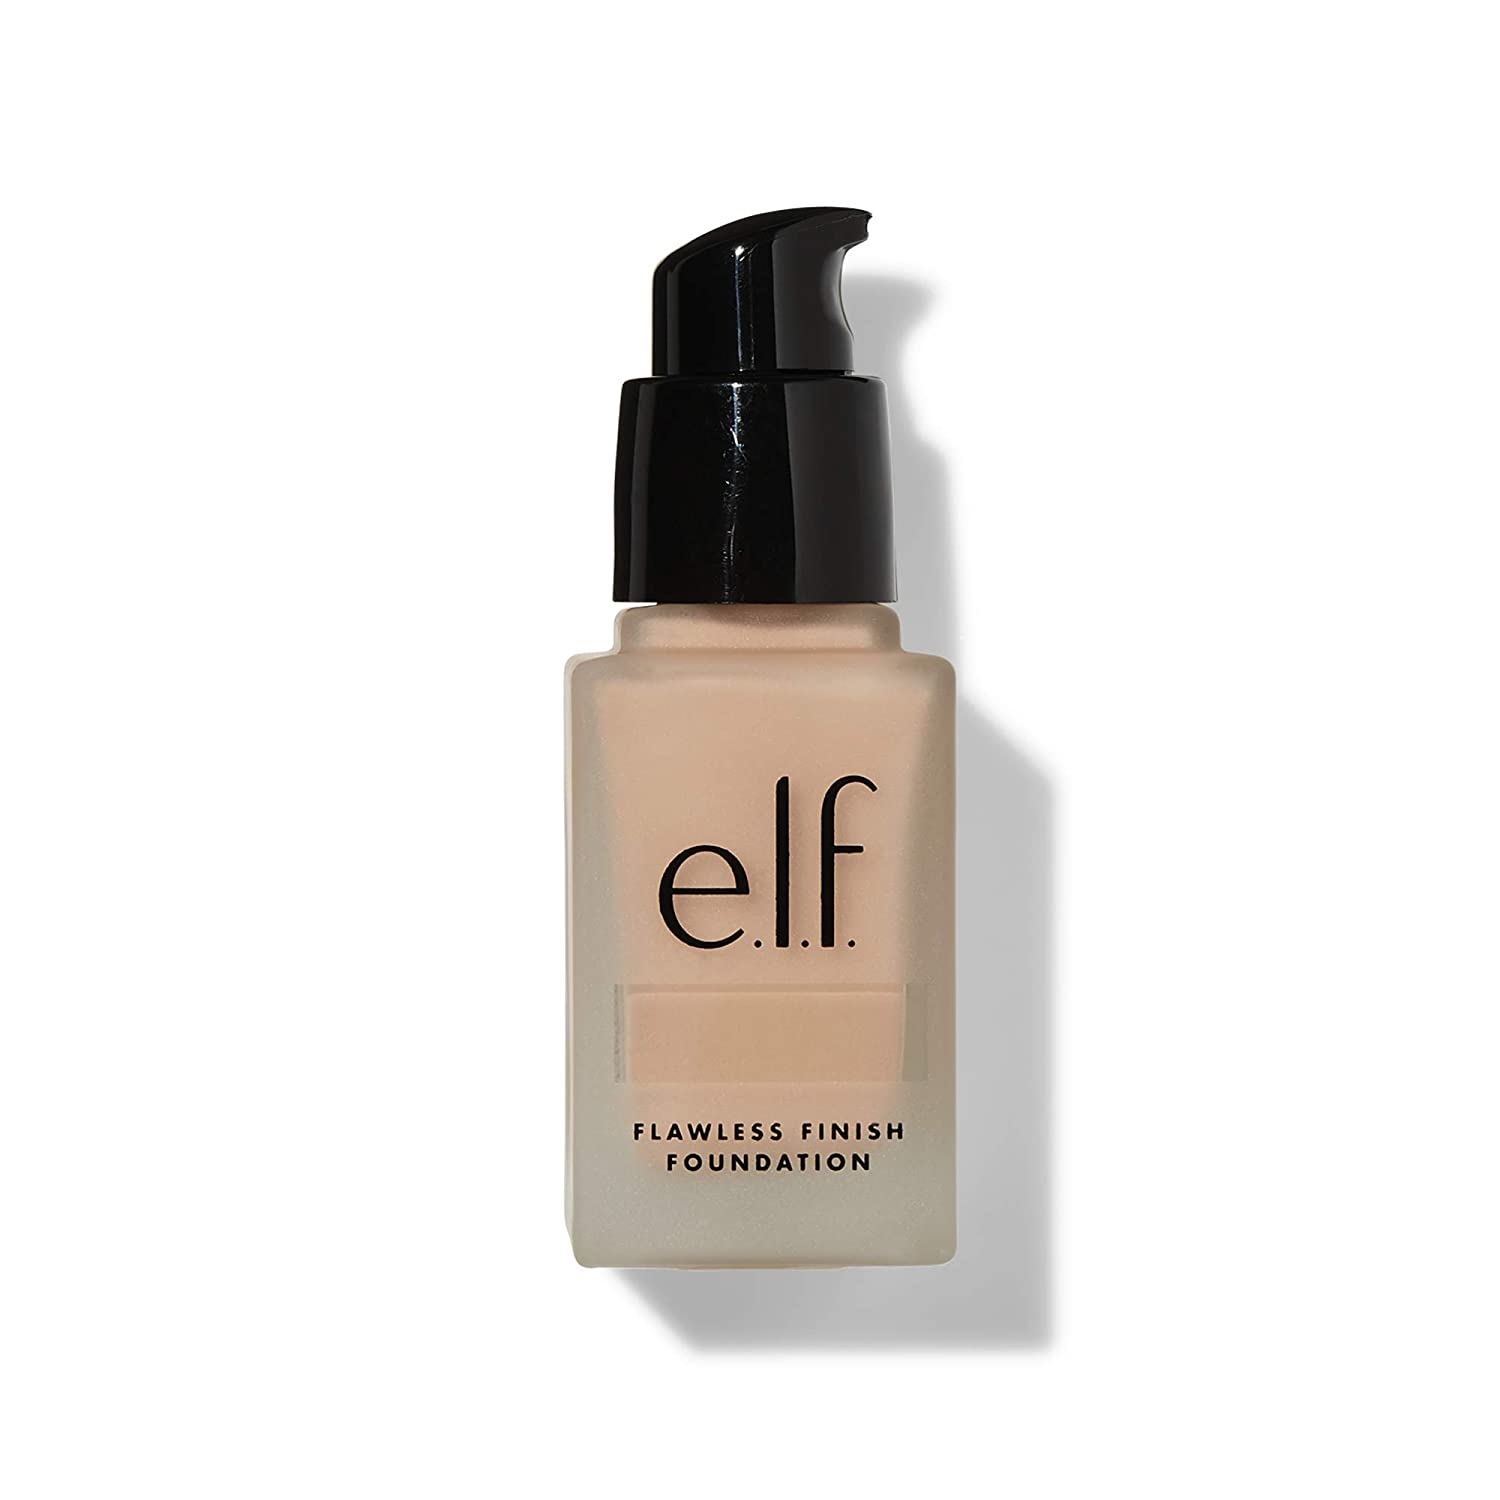 e.l.f Flawless Finish Foundation